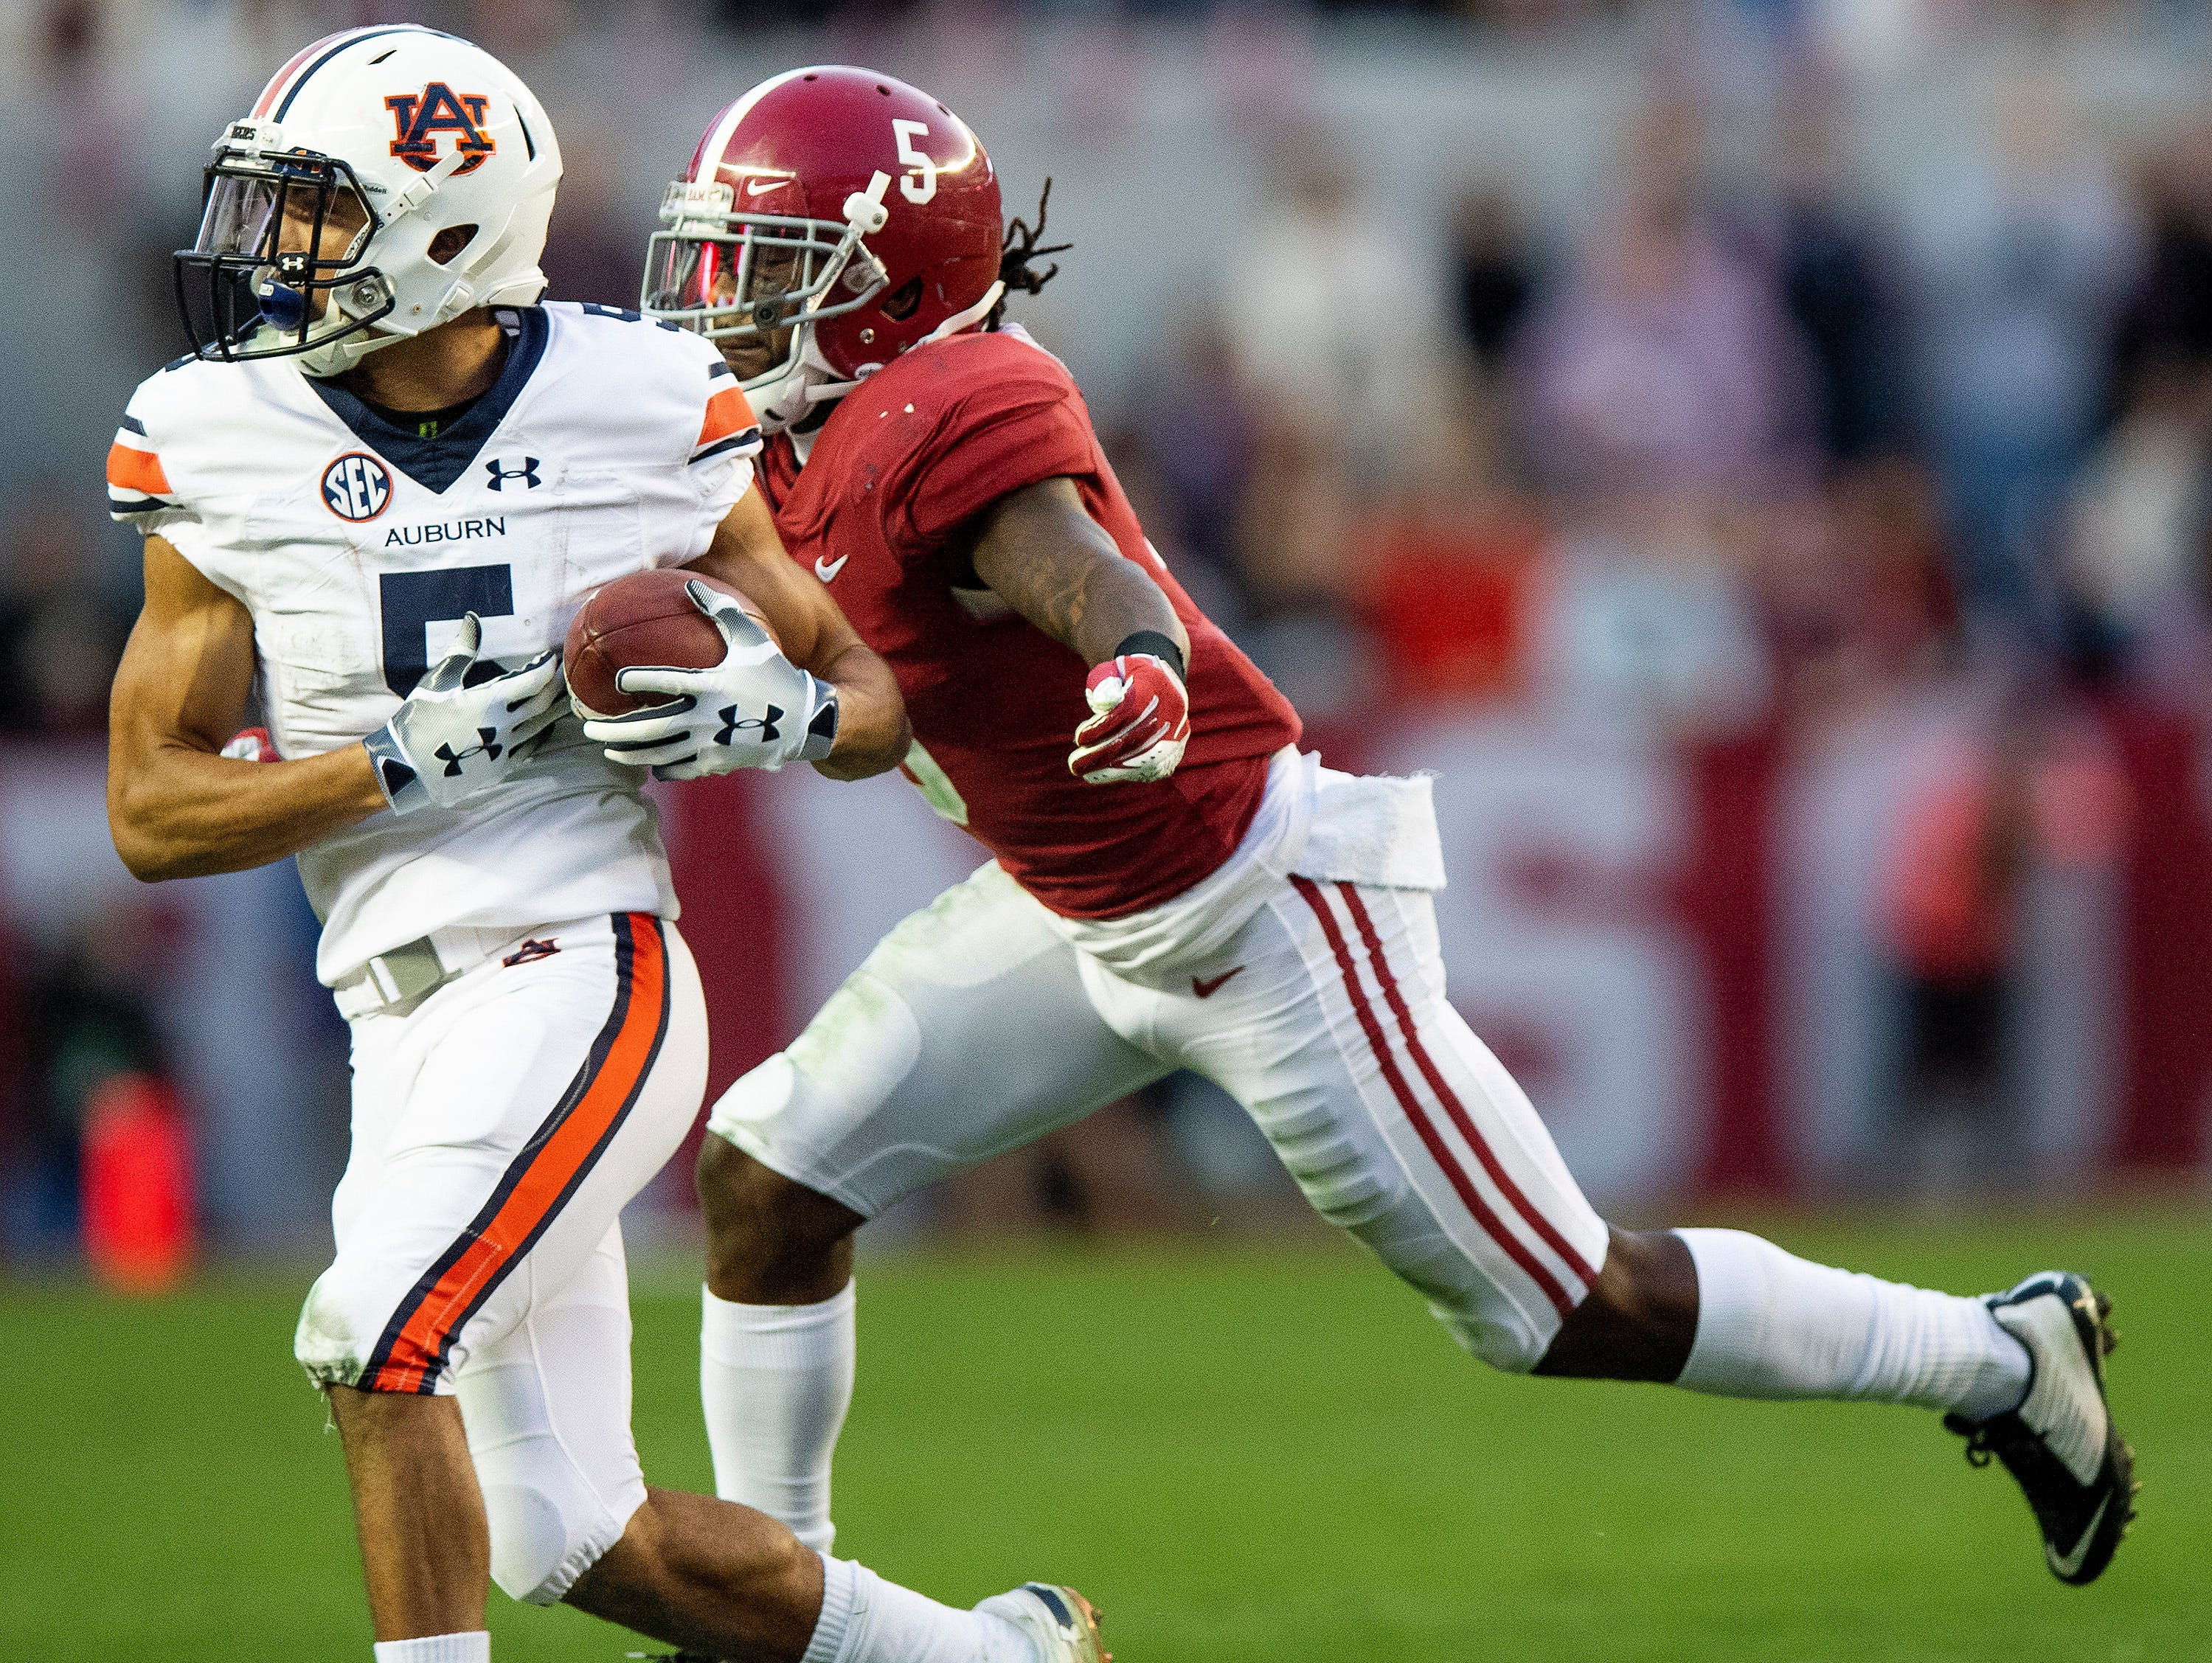 Alabama defensive back Shyheim Carter (5) stops Auburn wide receiver Anthony Schwartz (5) in second half action during the Iron Bowl at Bryant-Denny Stadium in Tuscaloosa, Ala., on Saturday November 24, 2018.